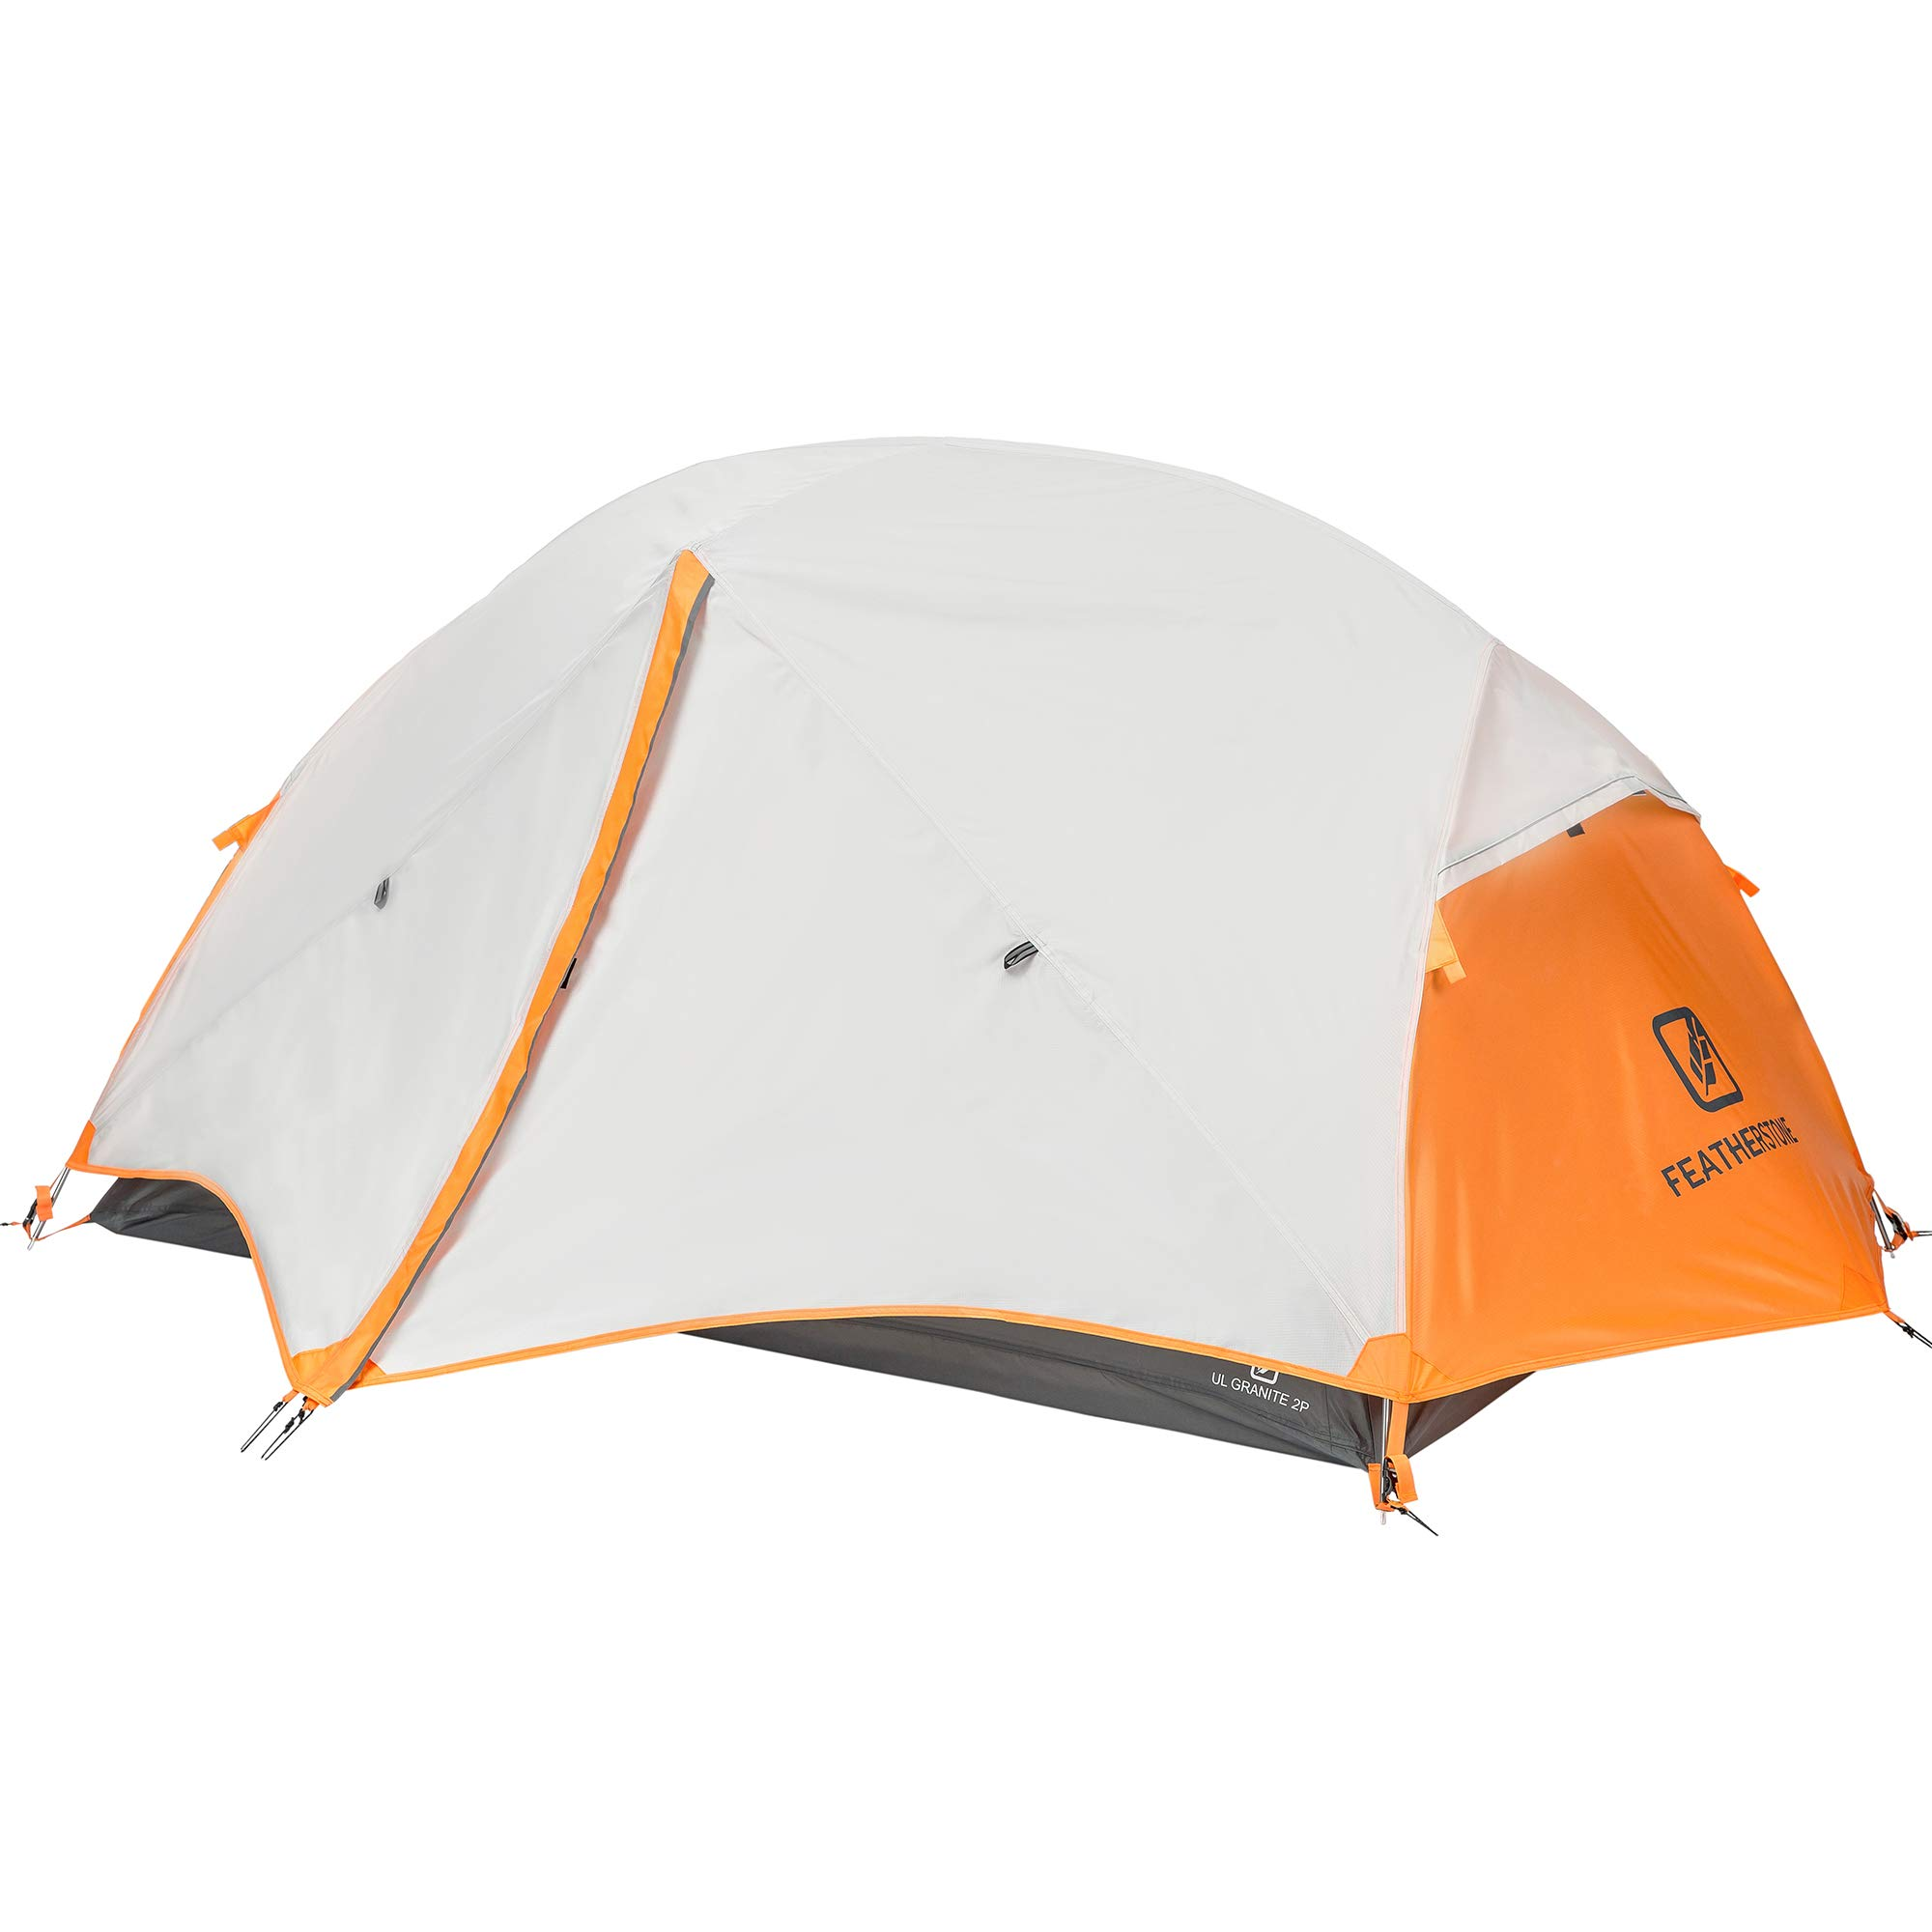 Featherstone Outdoor UL Granite Backpacking 2 Person Tent for Ultralight 3-Season Camping and Expeditions by Featherstone